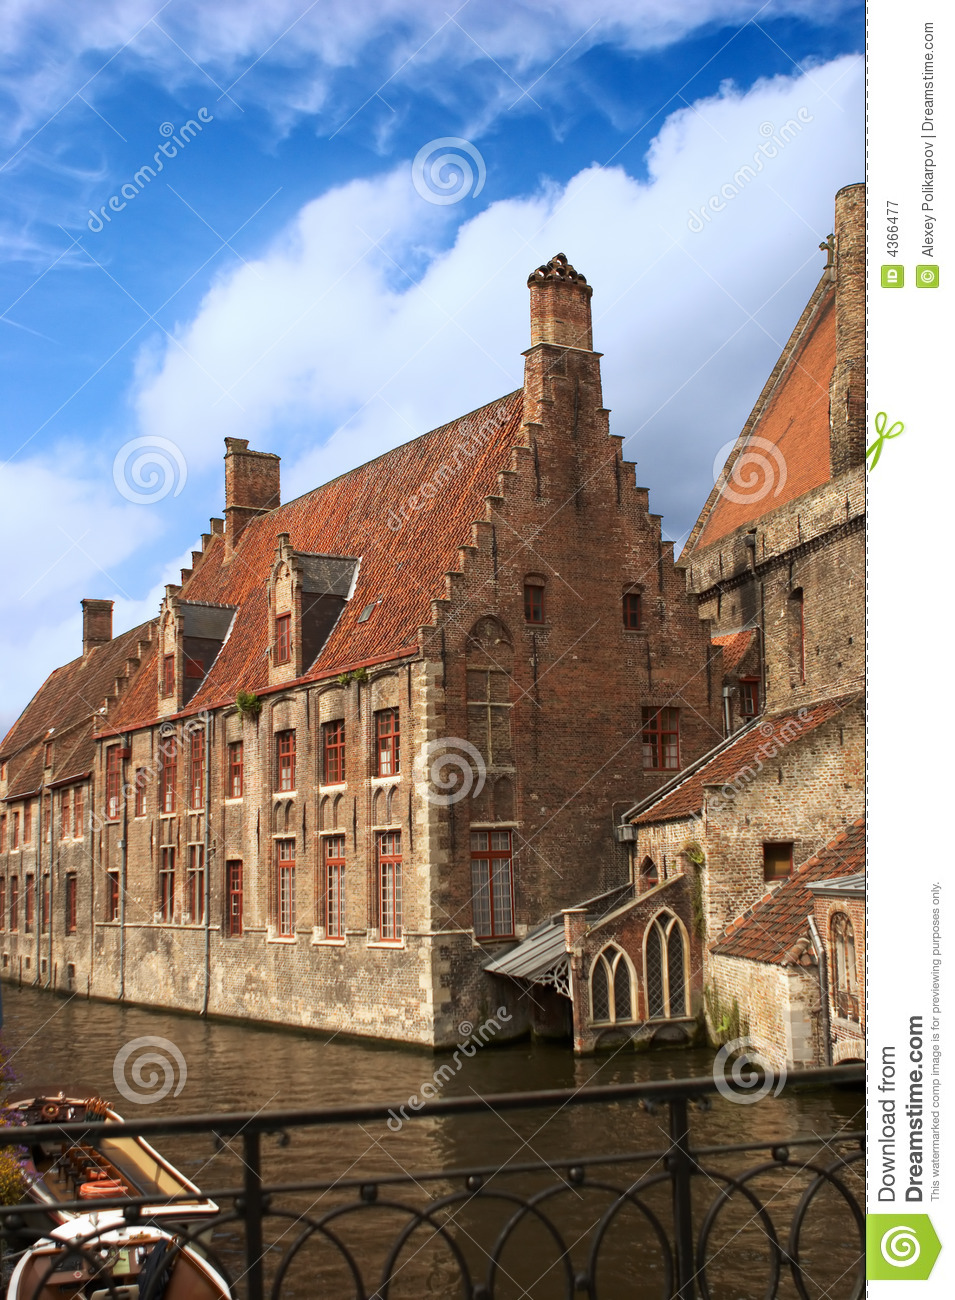 Oud huis royalty vrije stock fotografie beeld 4366477 - Lay outs oud huis ...